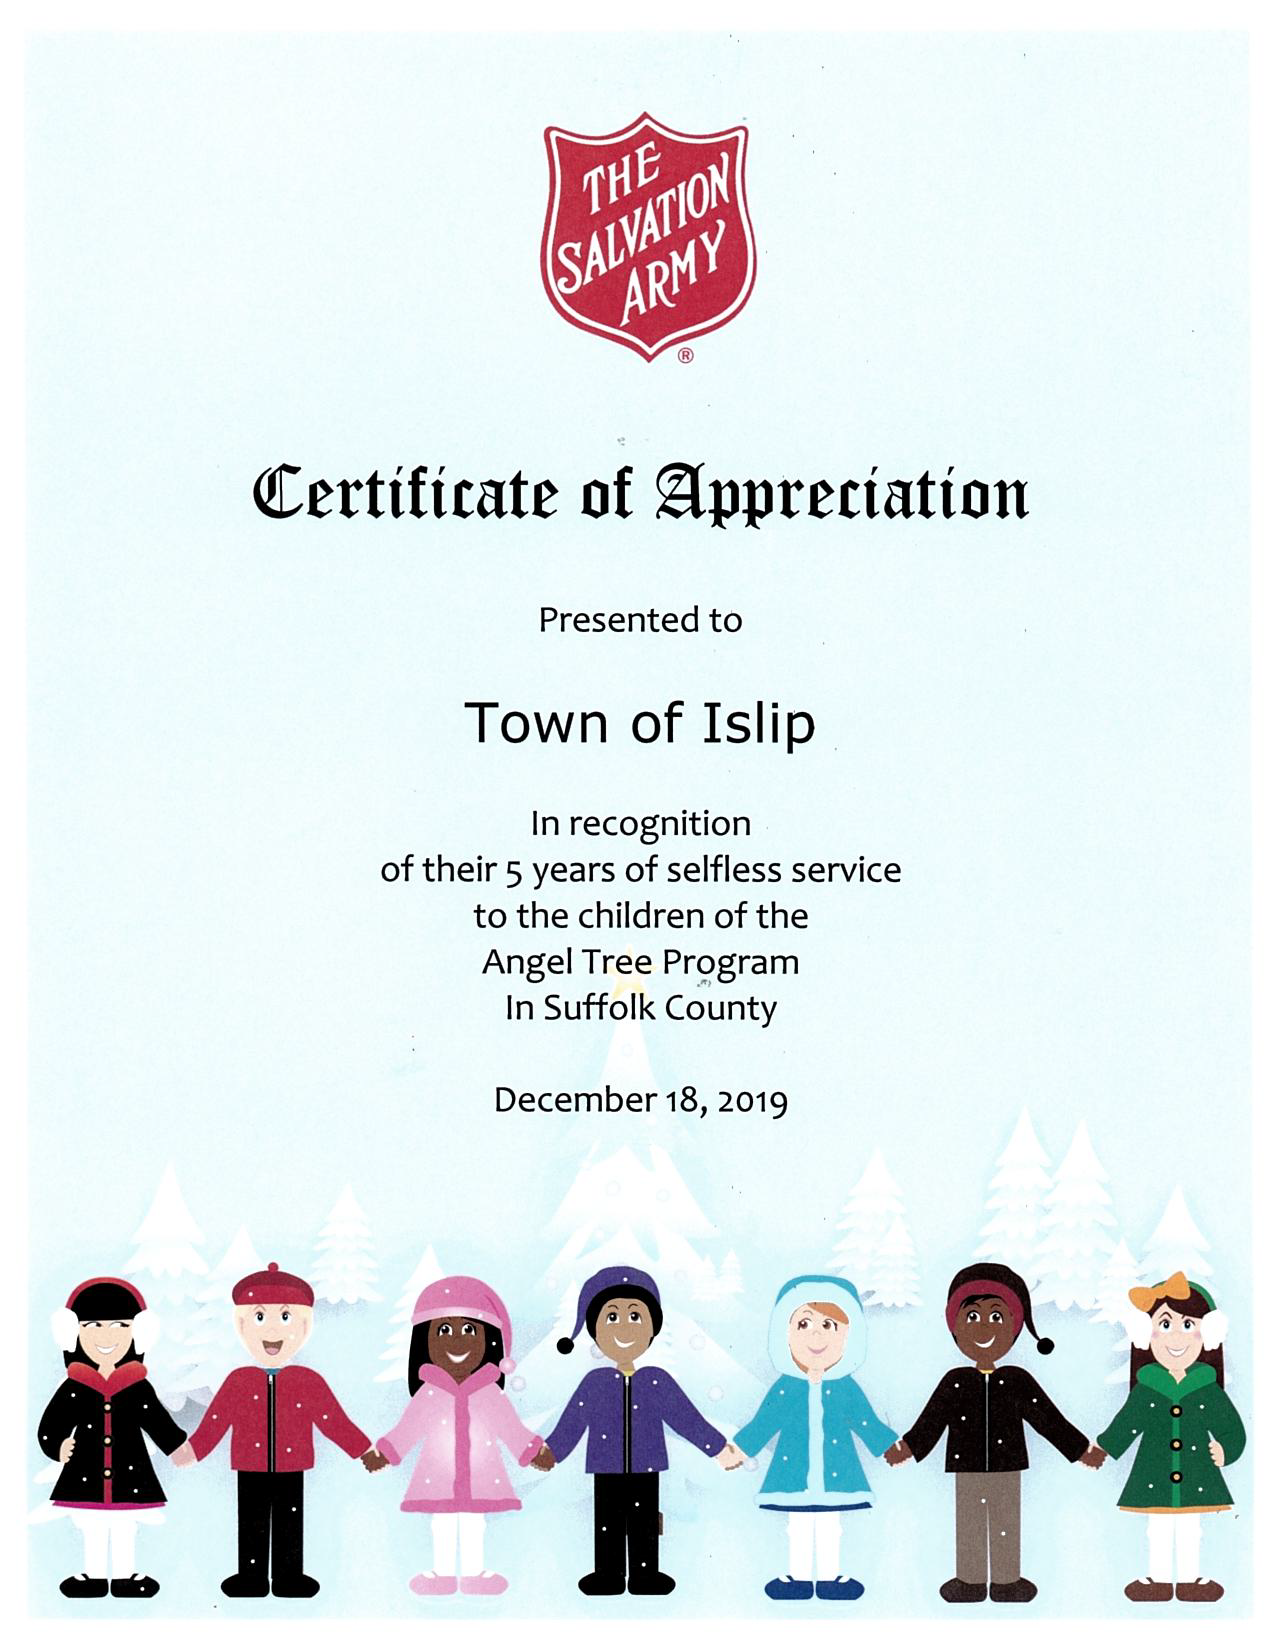 A certificate of appreciation from the Salvation Army for Town of Islip's 5 years of dedication and support.